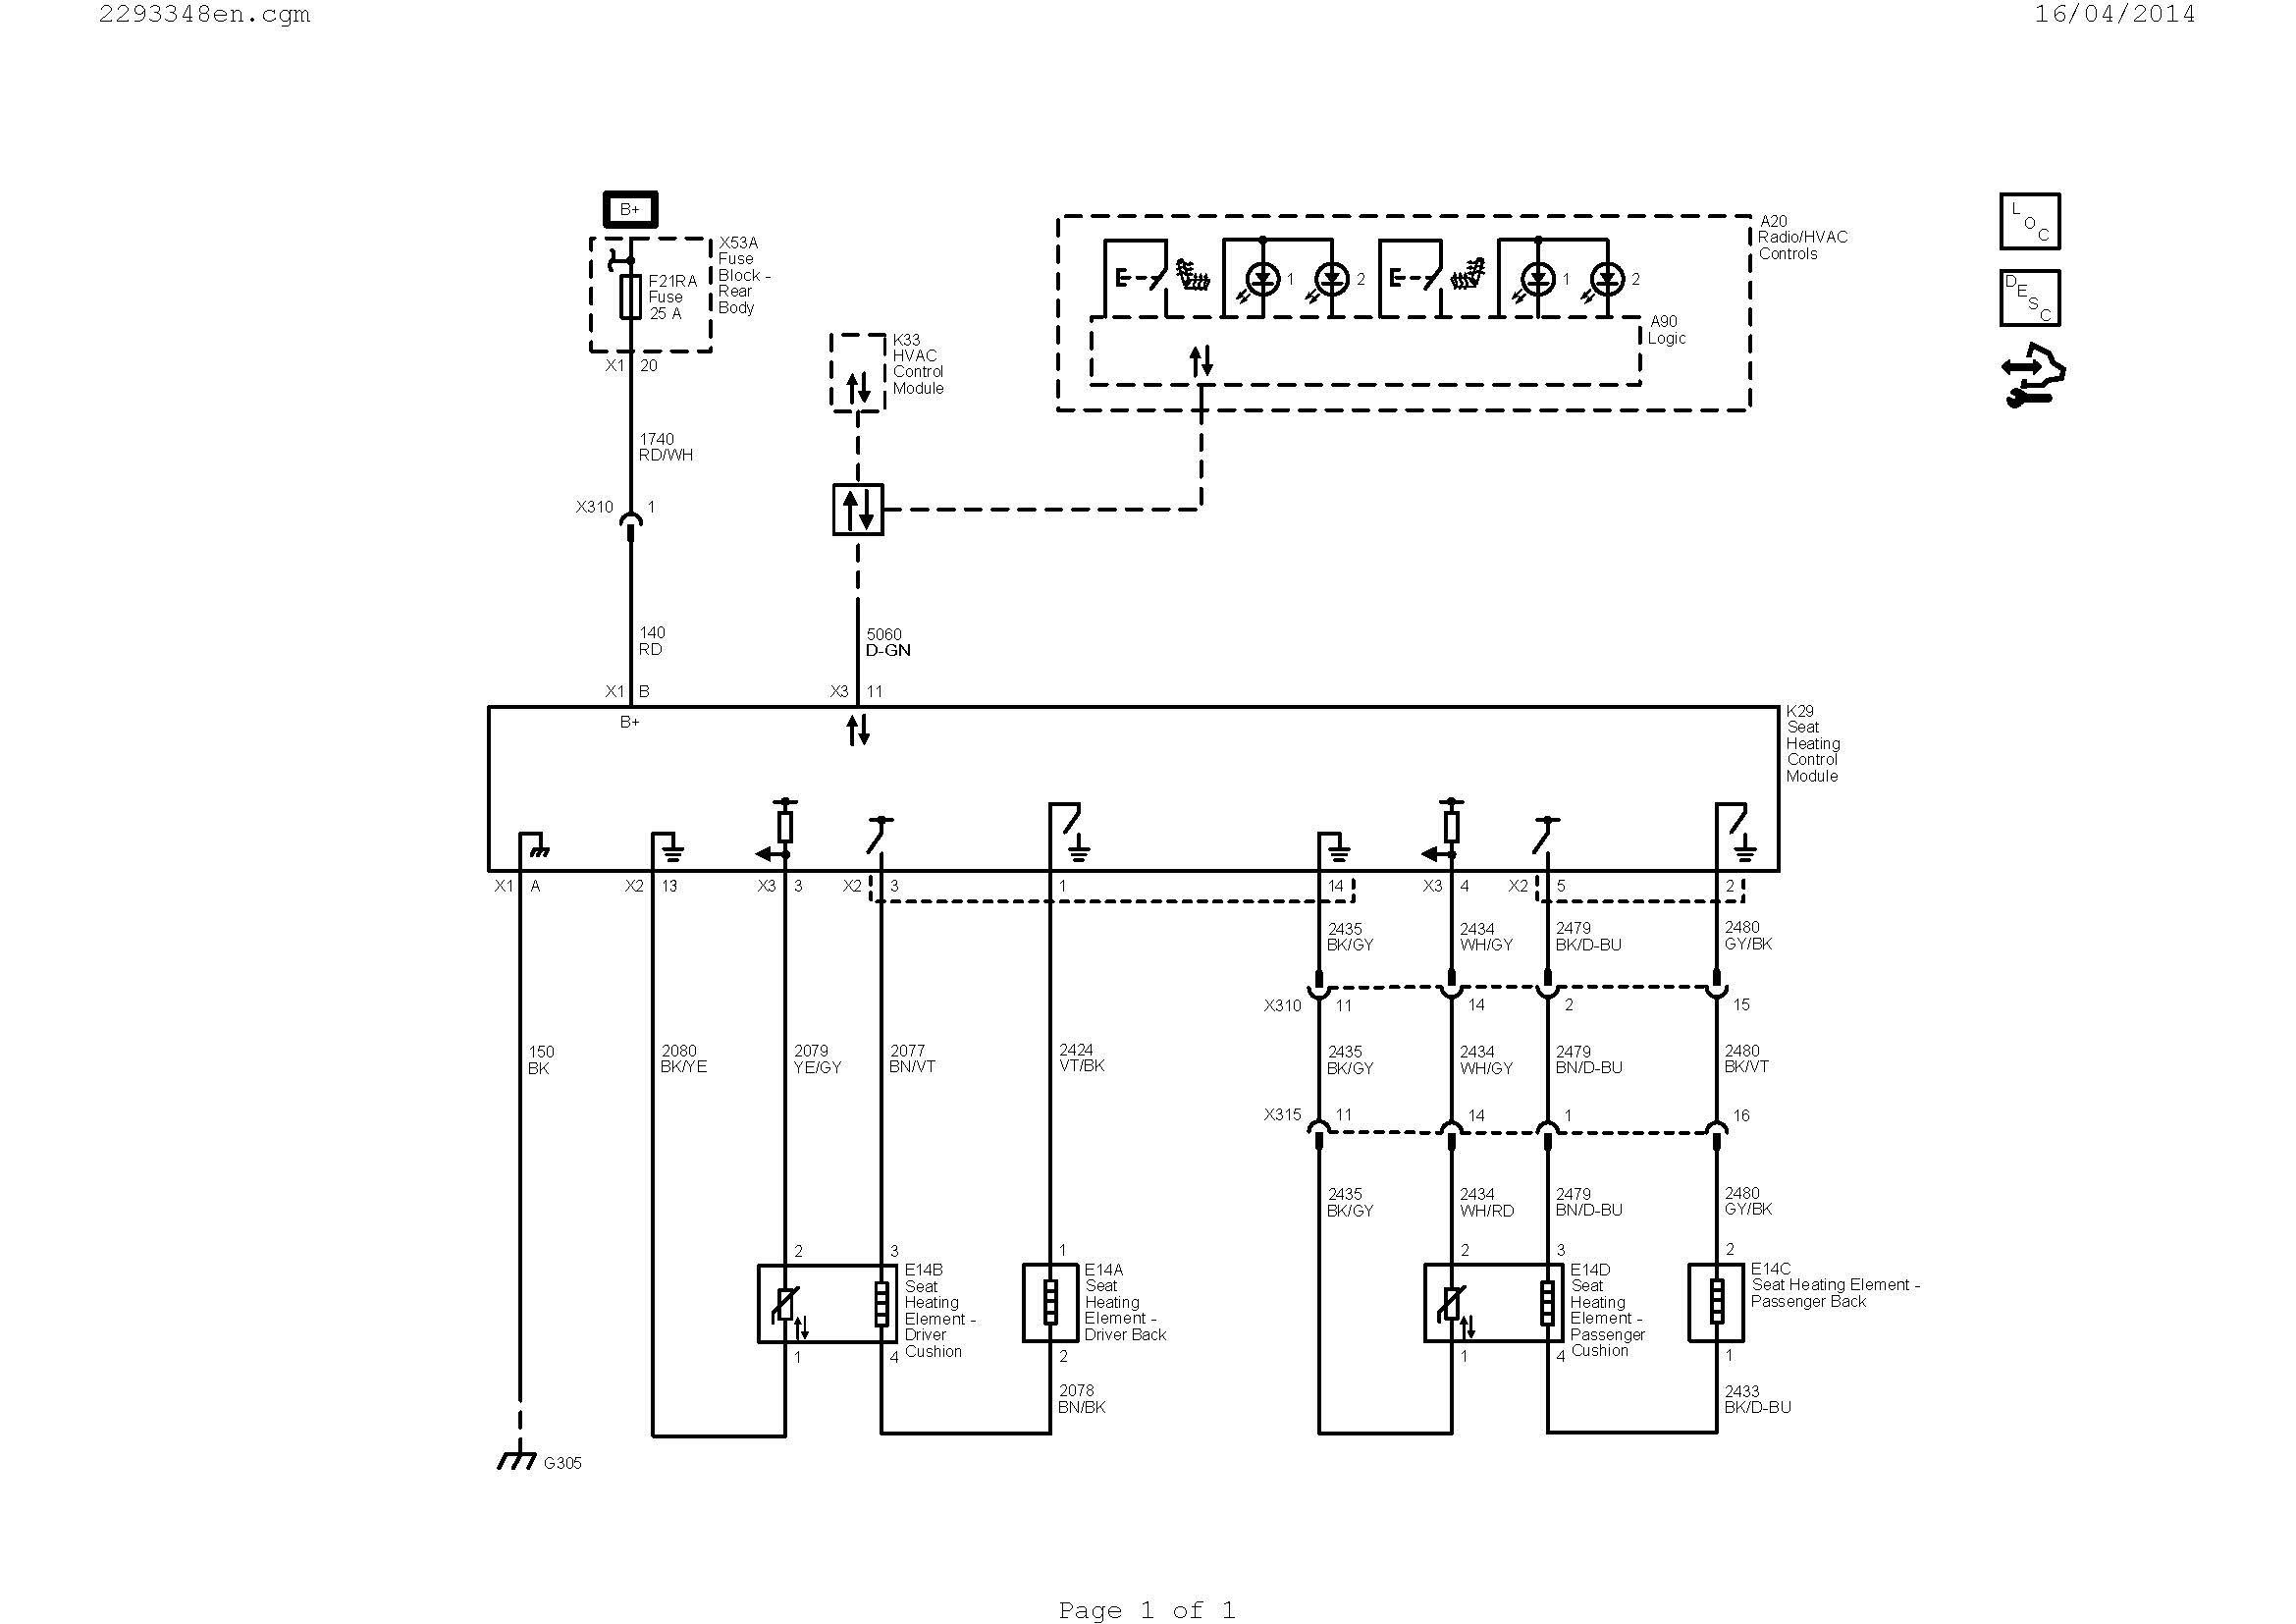 acme transformer t 1 81051 wiring diagram Download-fan wiring diagram Collection Wiring Diagram For Changeover Relay Inspirationa Wiring Diagram Ac Valid Hvac DOWNLOAD Wiring Diagram 15-g